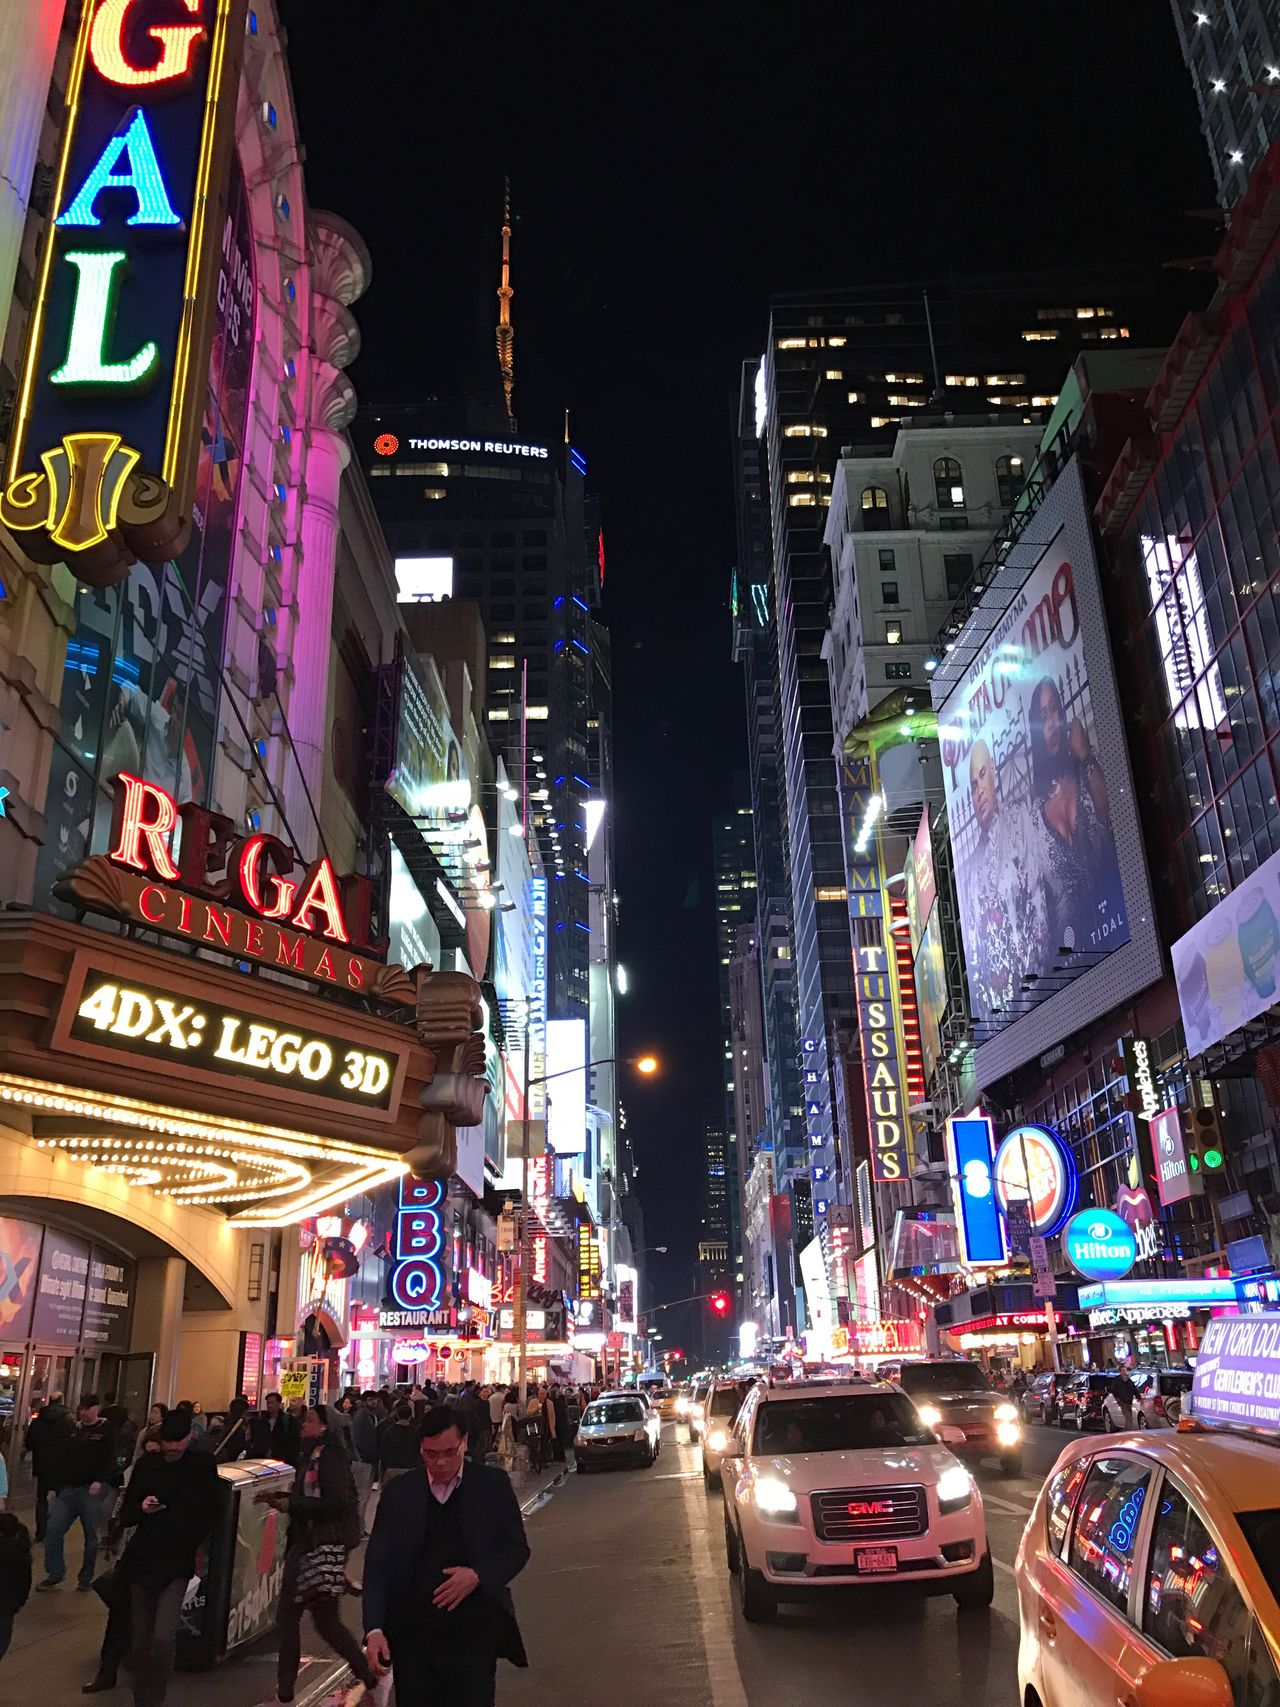 Times Square NYC Night Illuminated City Travel Destinations Tourism Taxi Nightlife Skyscraper City Street City Life Tourist Traffic Travel Building Exterior Multi Colored Neon Cityscape Architecture Yellow Taxi Outdoors